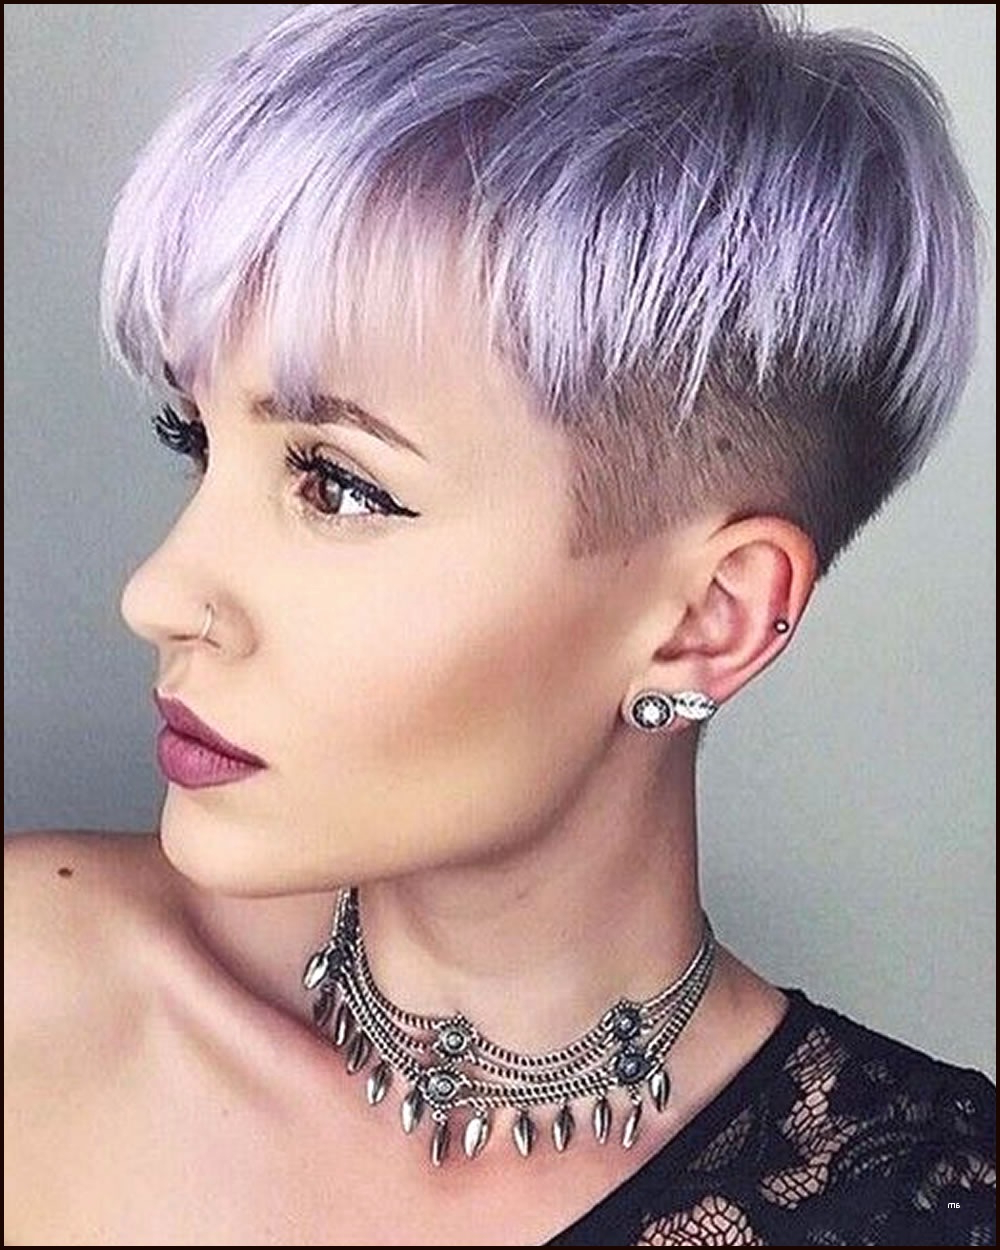 67 New Images Of Short Hairstyles For Women   Hairstyles Pertaining To Feminine Short Hairstyles For Women (View 18 of 25)